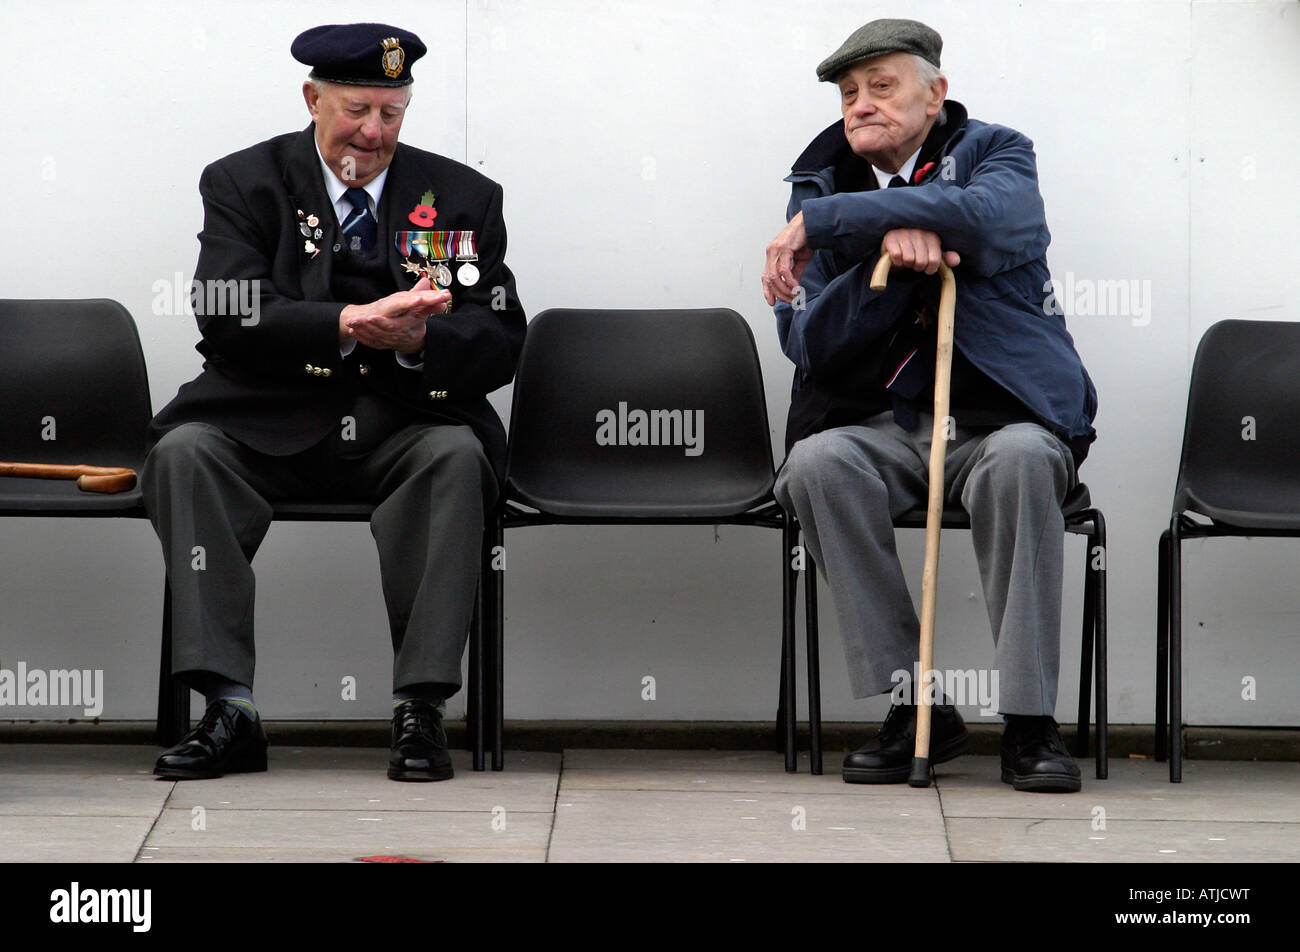 Veterans Reminiscing at a Remembrance Sunday Service in the UK - Stock Image